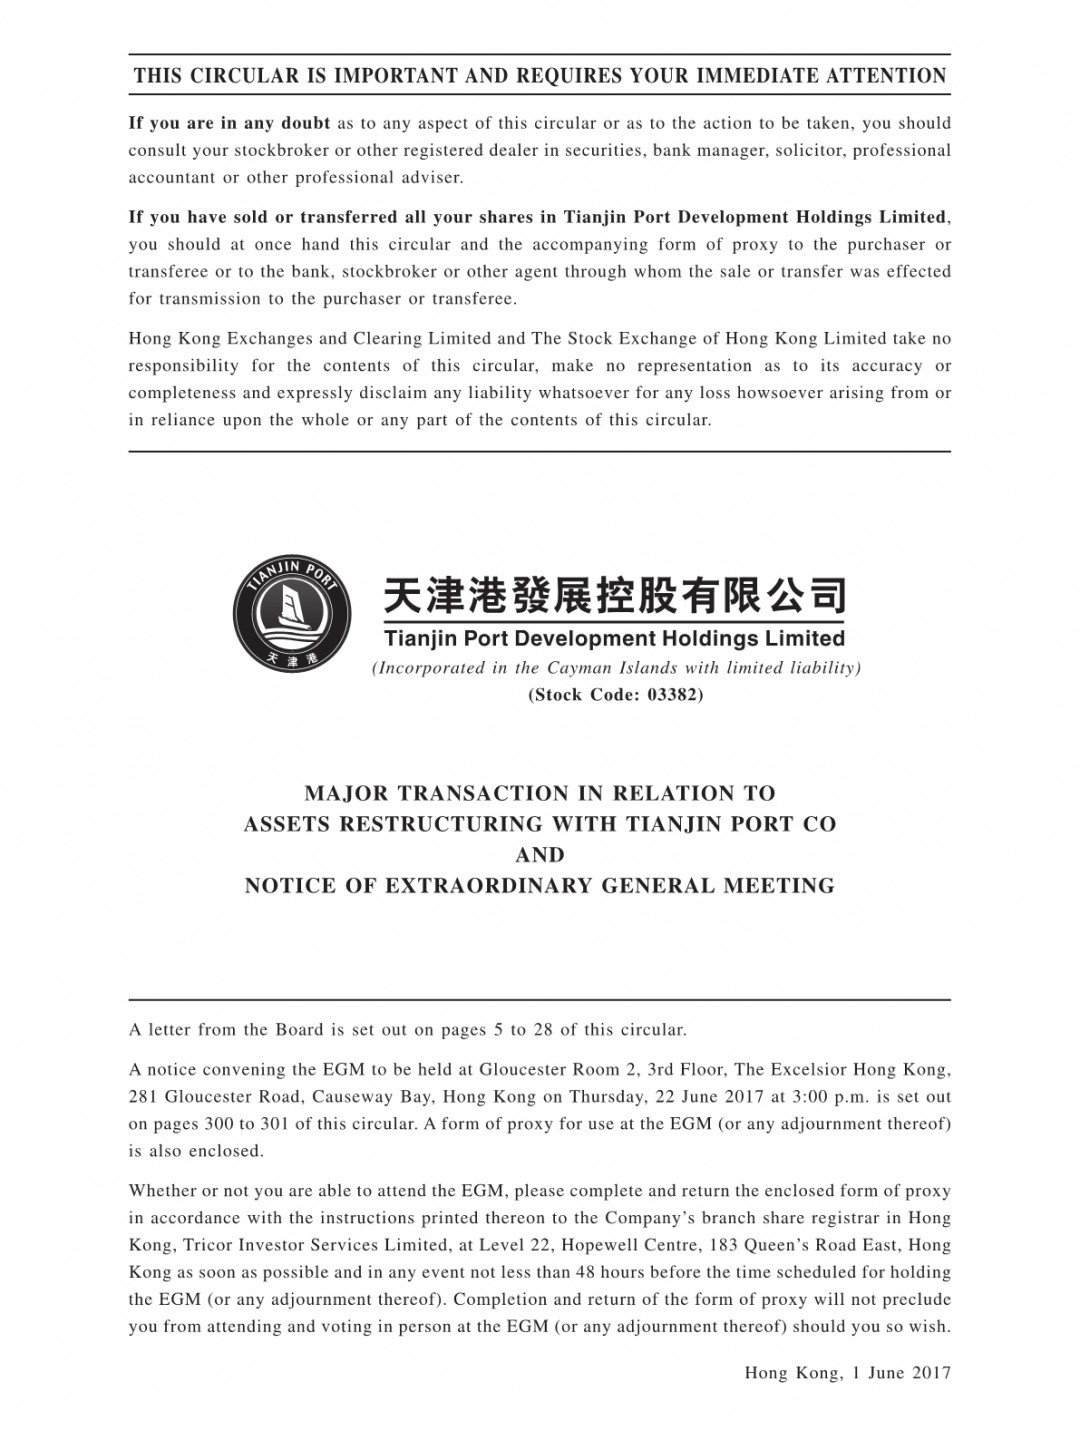 Tianjin Port Development Holdings Limited